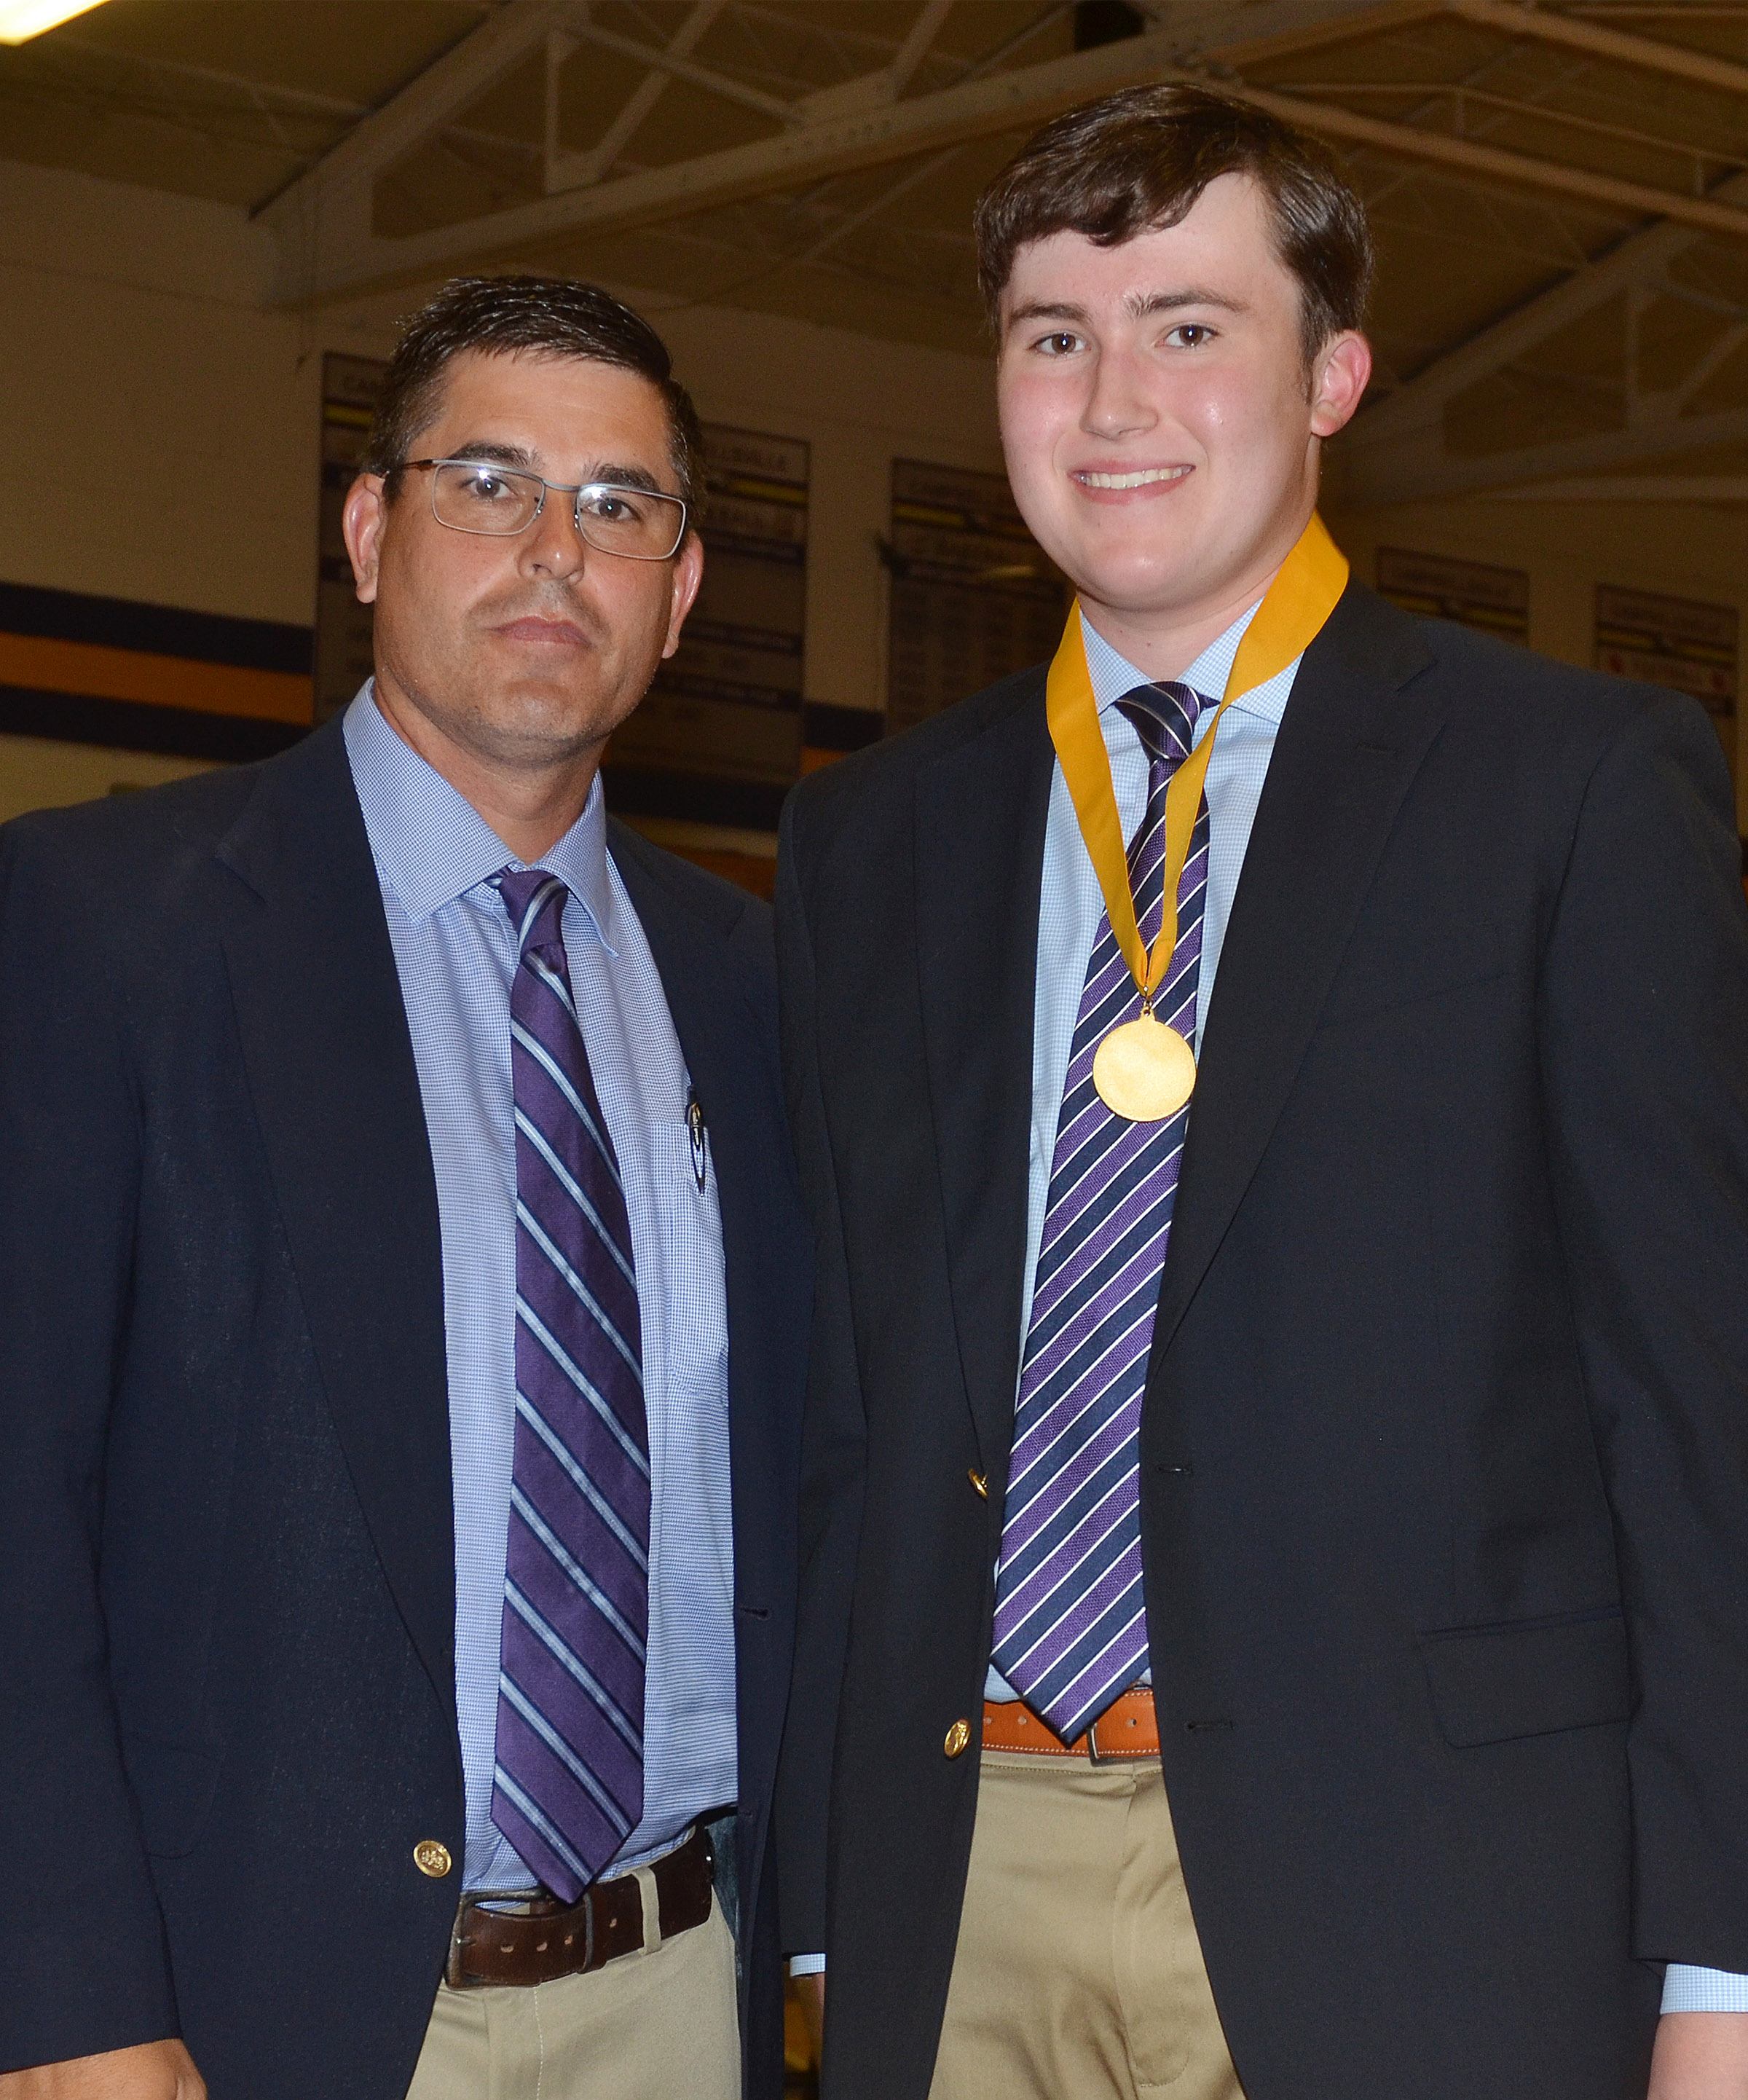 Zack Settle received the Gold award for having a GPA between 3.7 and 3.85. He is pictured with Principal Kirby Smith.